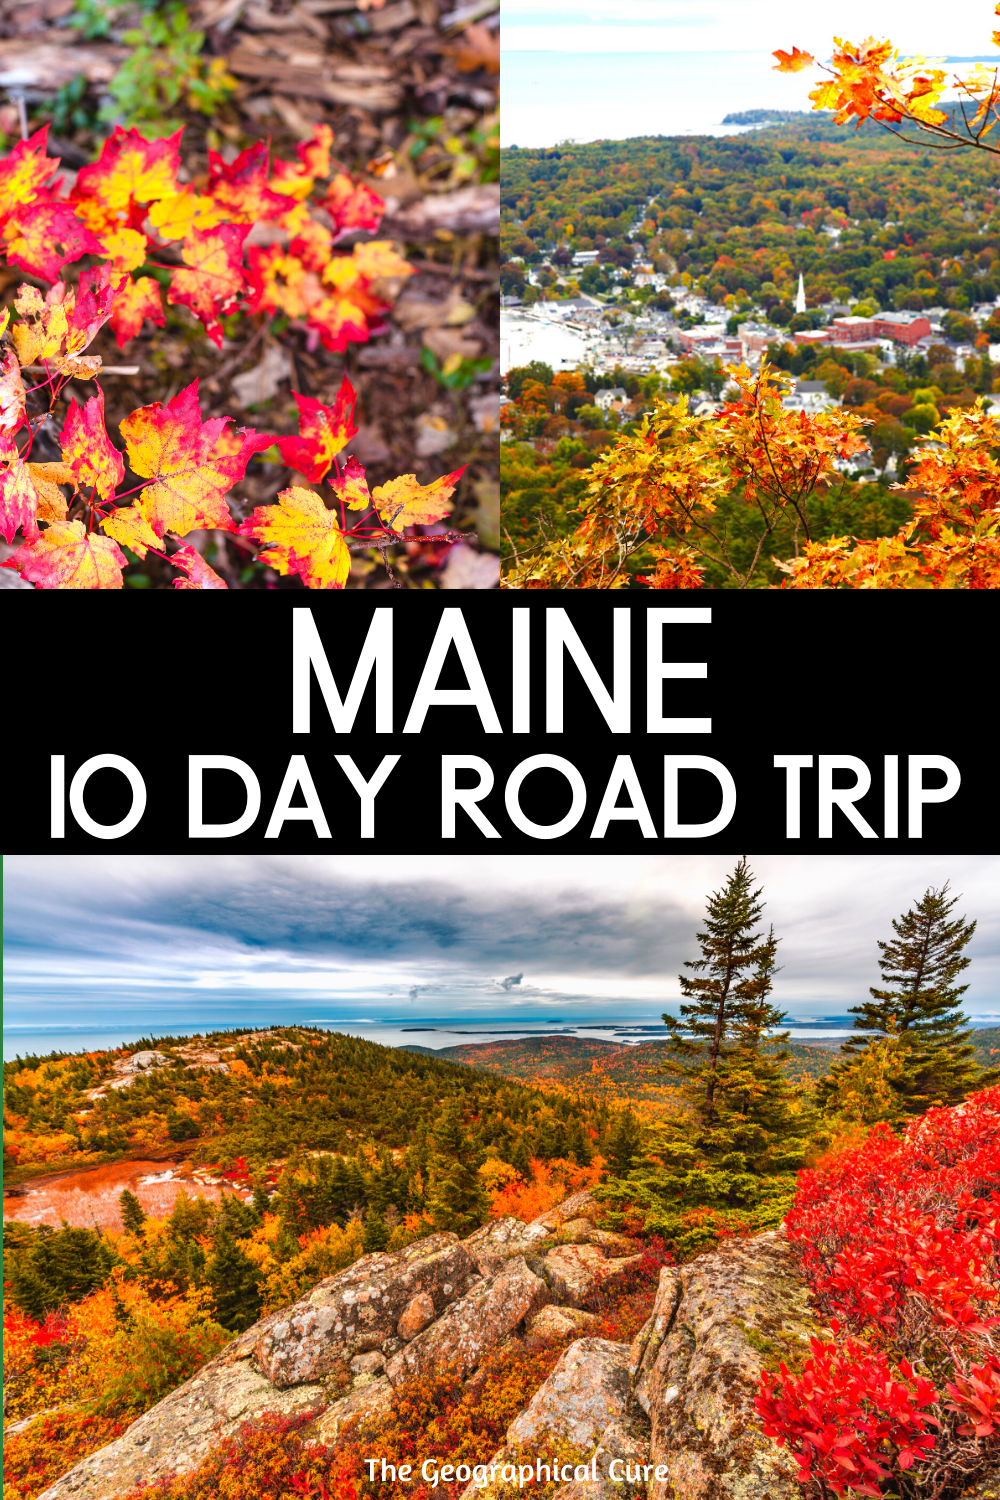 Maine: Epic 10 Day Road Trip Itinerary